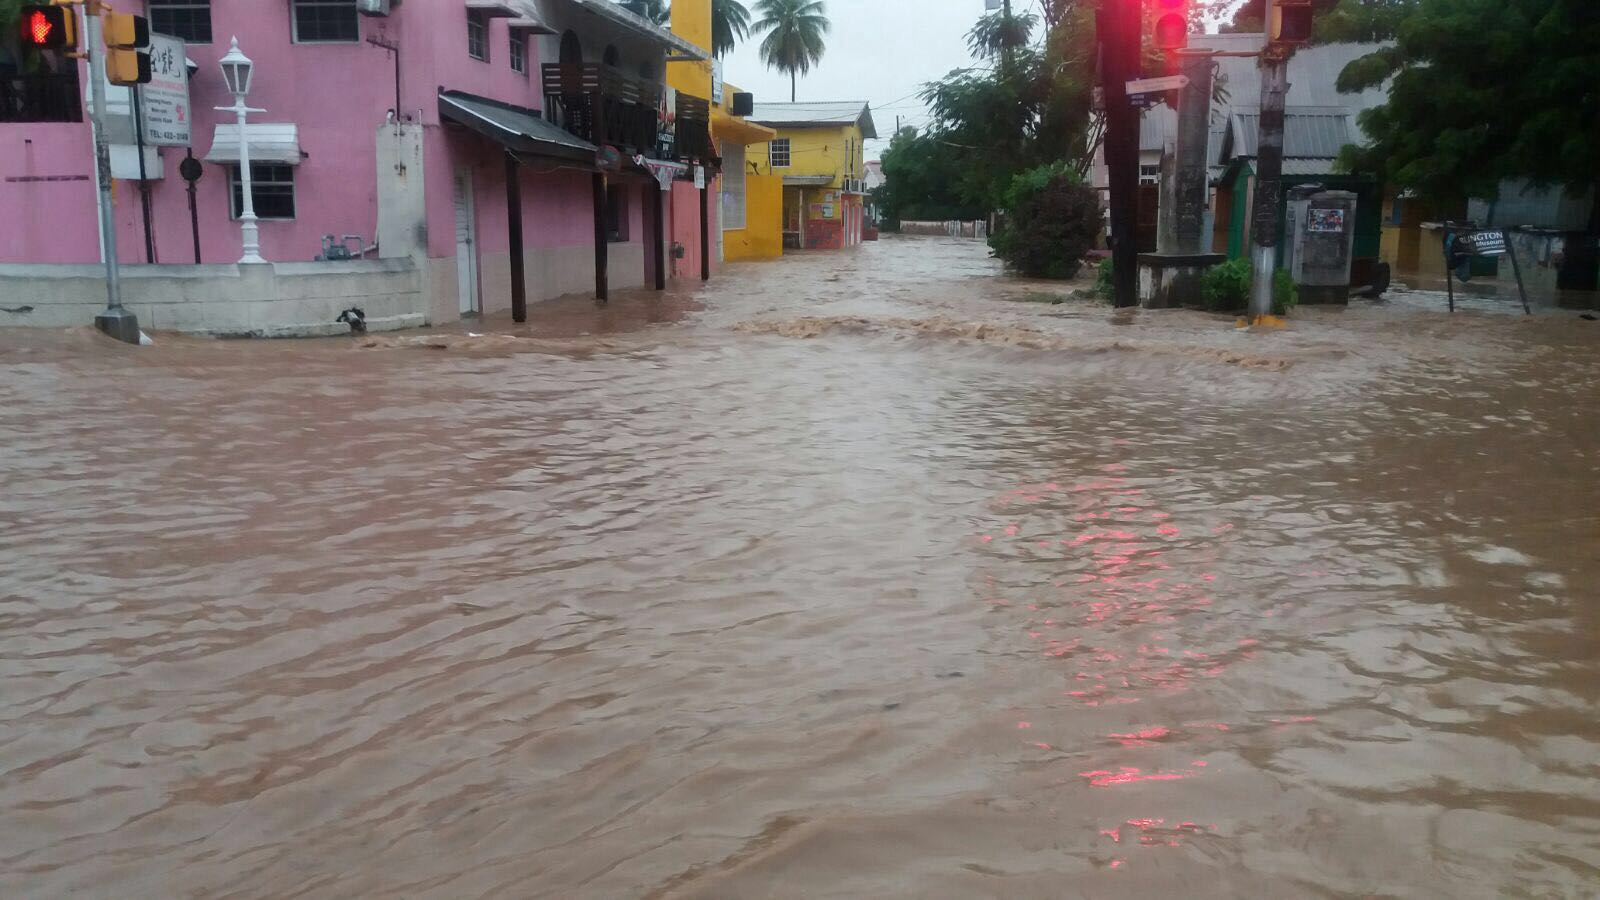 Flooding in Barbados caused by heavy rains associated with Tropical Storm Harvey.